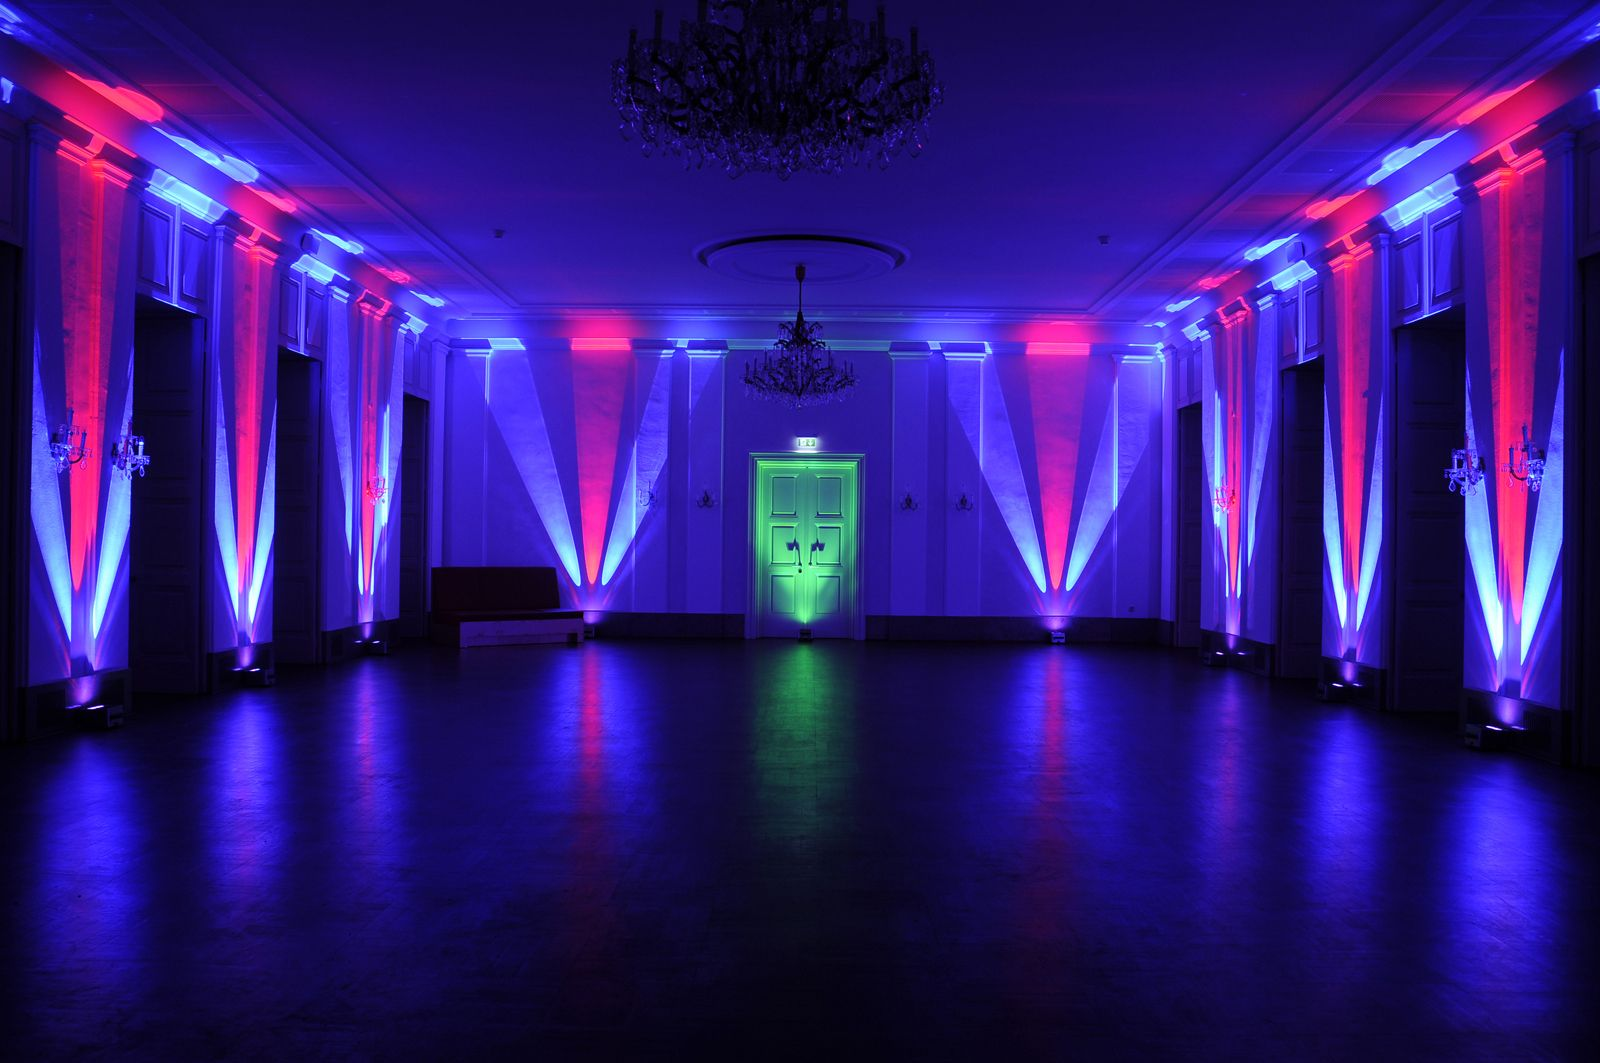 pattern lighting. color and lighting to create pattern height